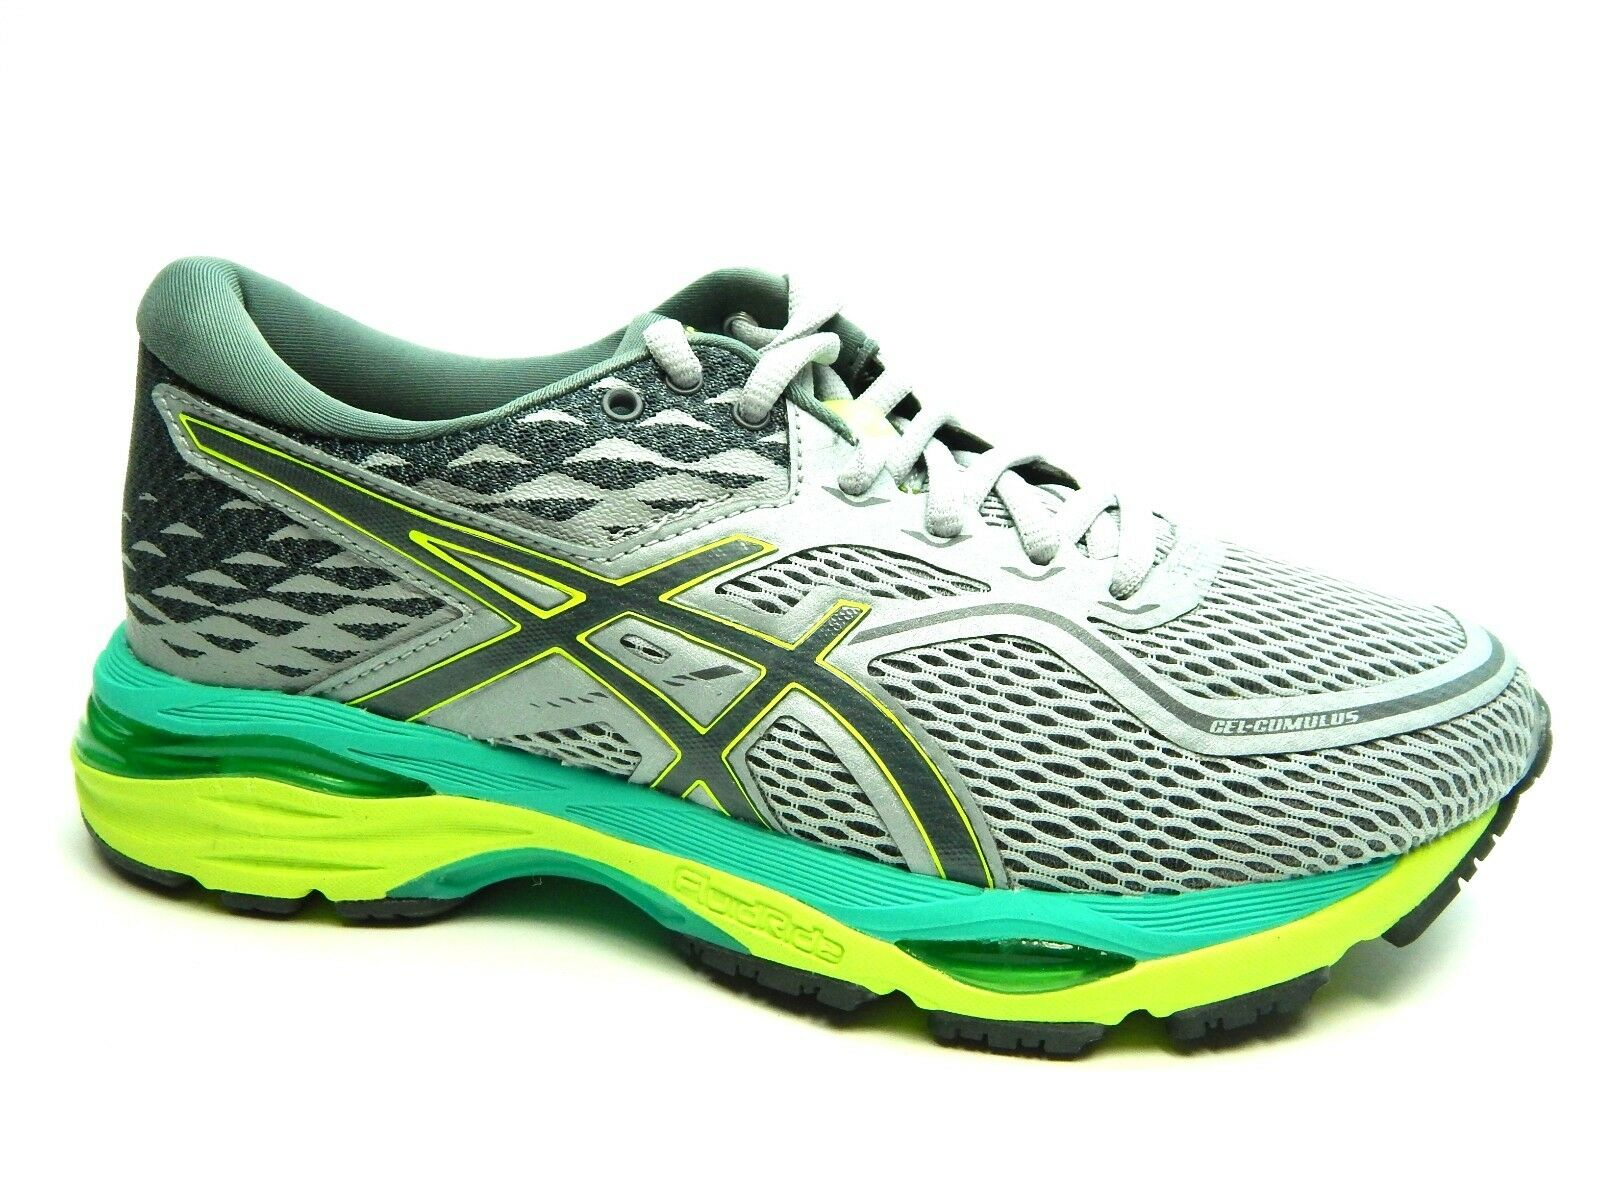 ASICS GEL CUMULUS 19 T7B8N 9697 MIDGREY CARBON SAFETY YELLOW WOMEN SHOES 6 & 8 best-selling model of the brand